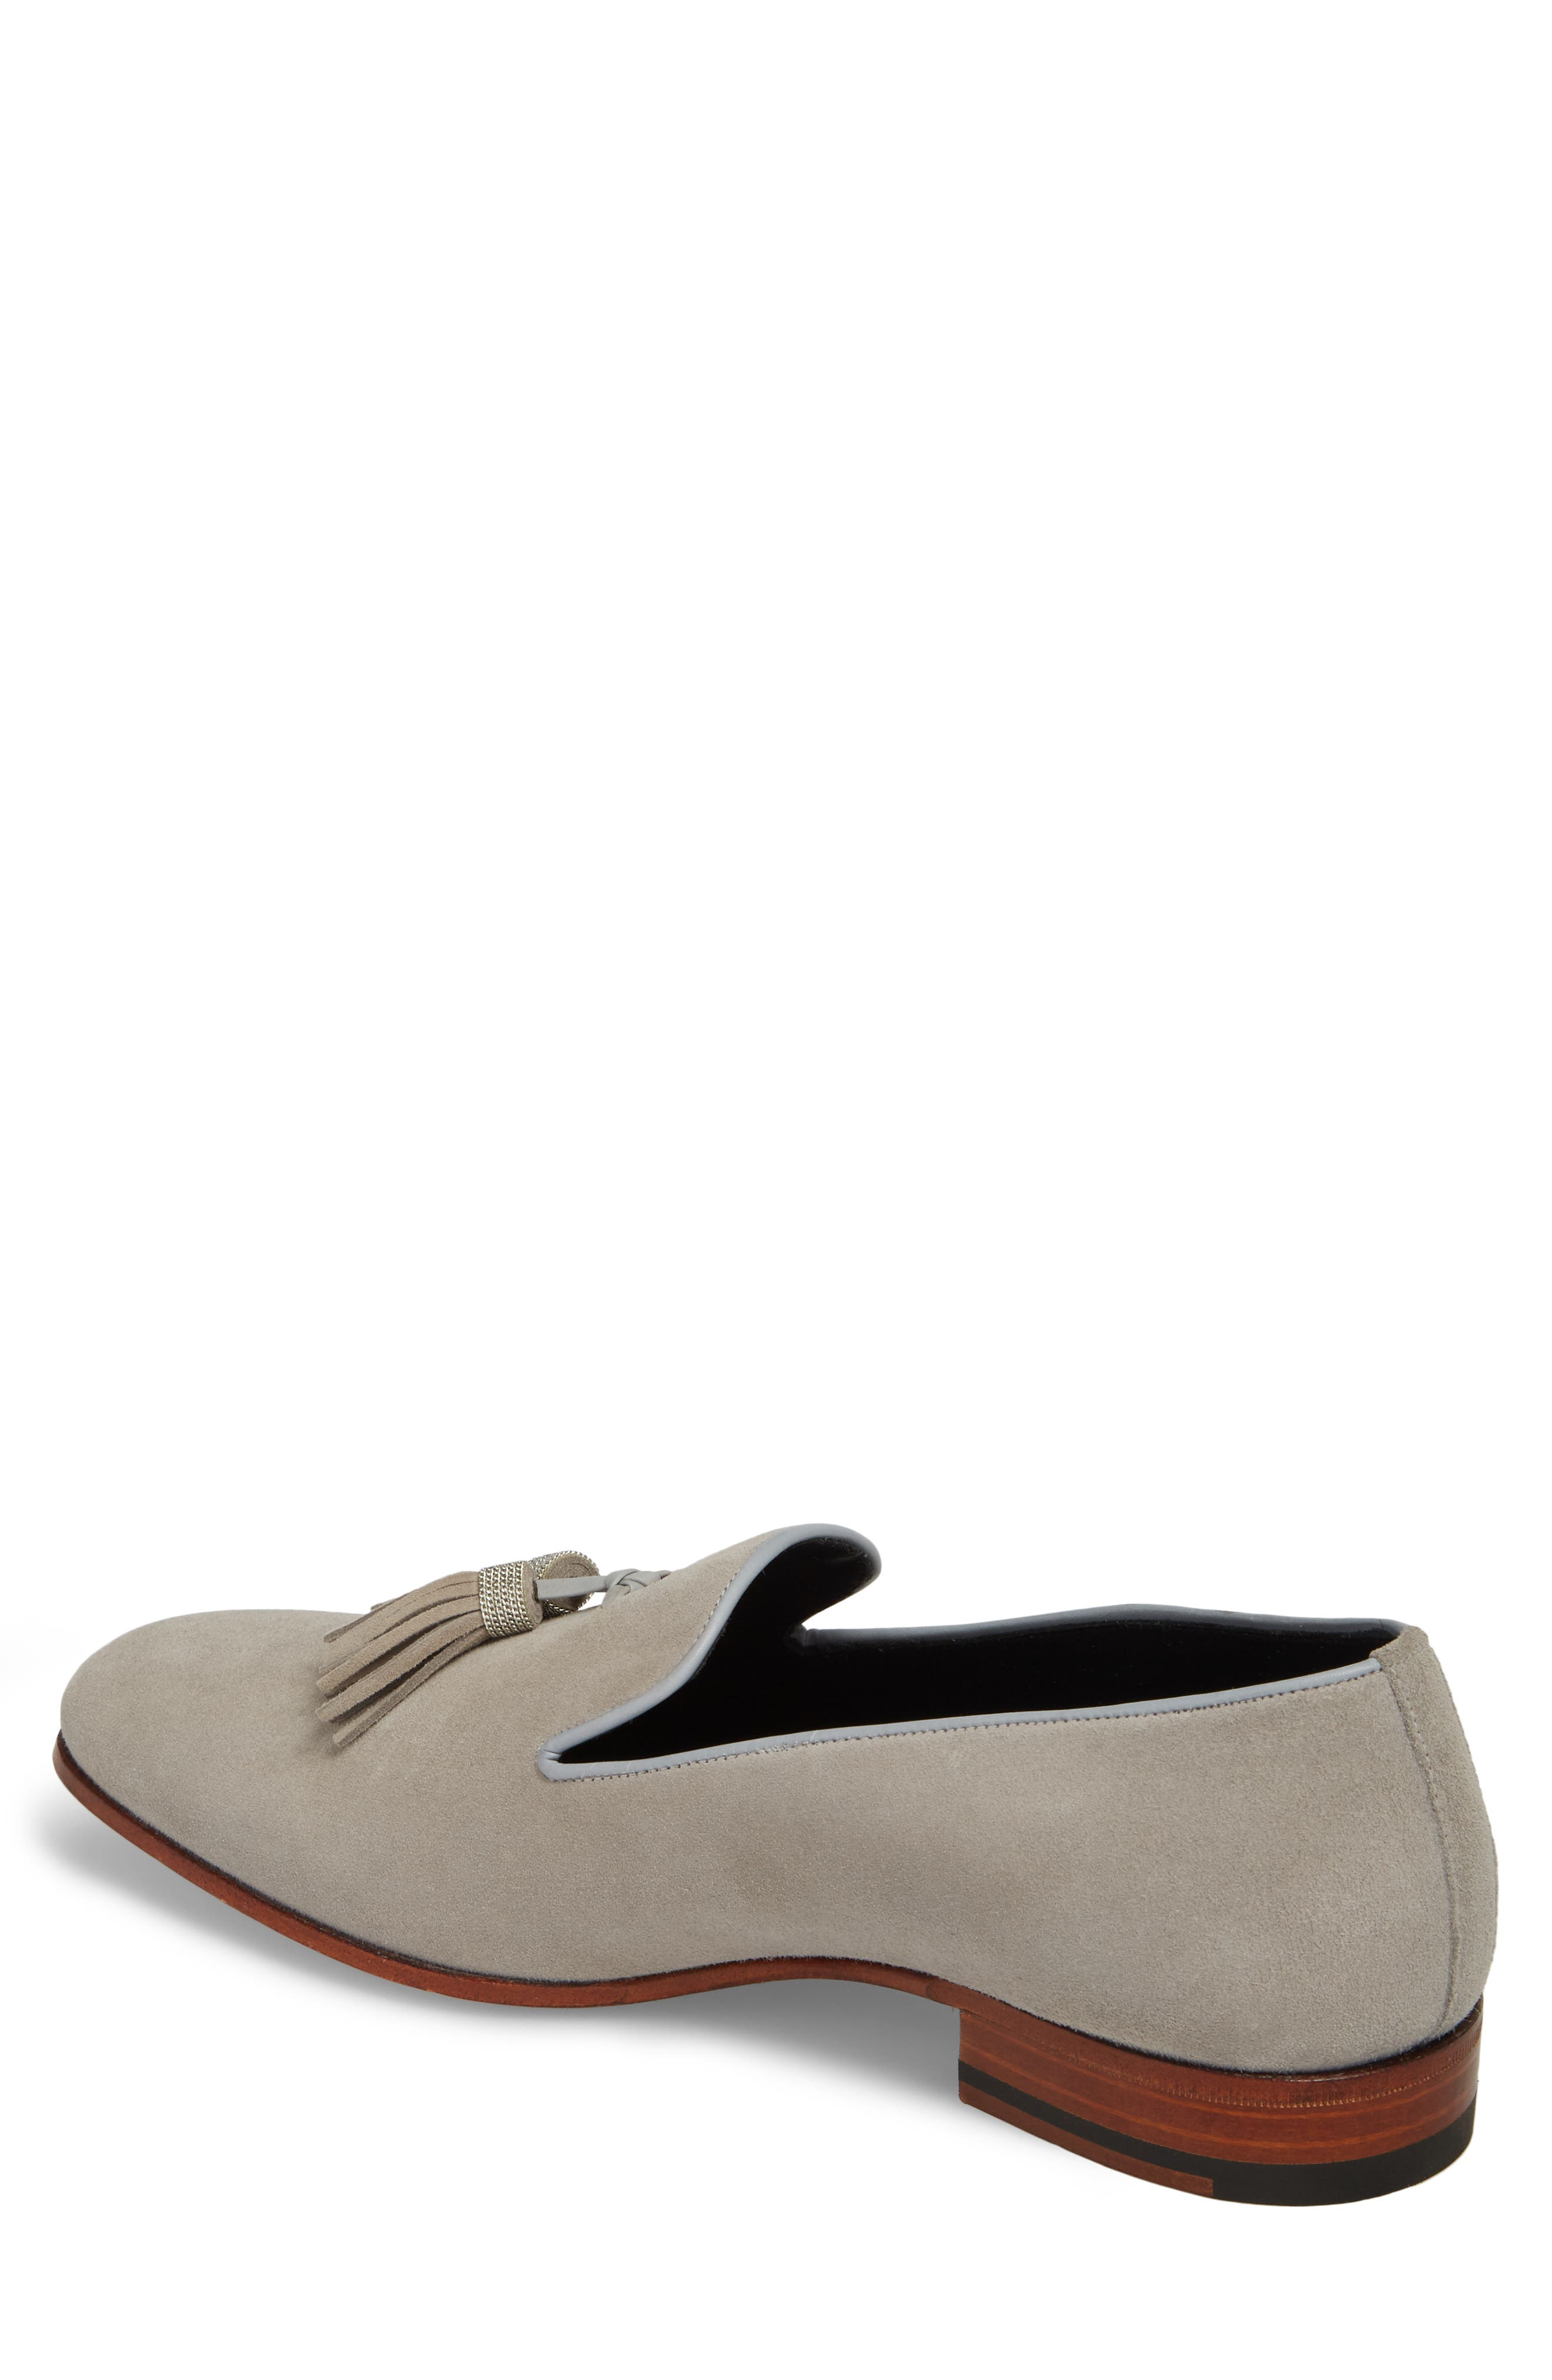 Picus Tassel Loafer,                             Alternate thumbnail 2, color,                             Pearl Grey Suede